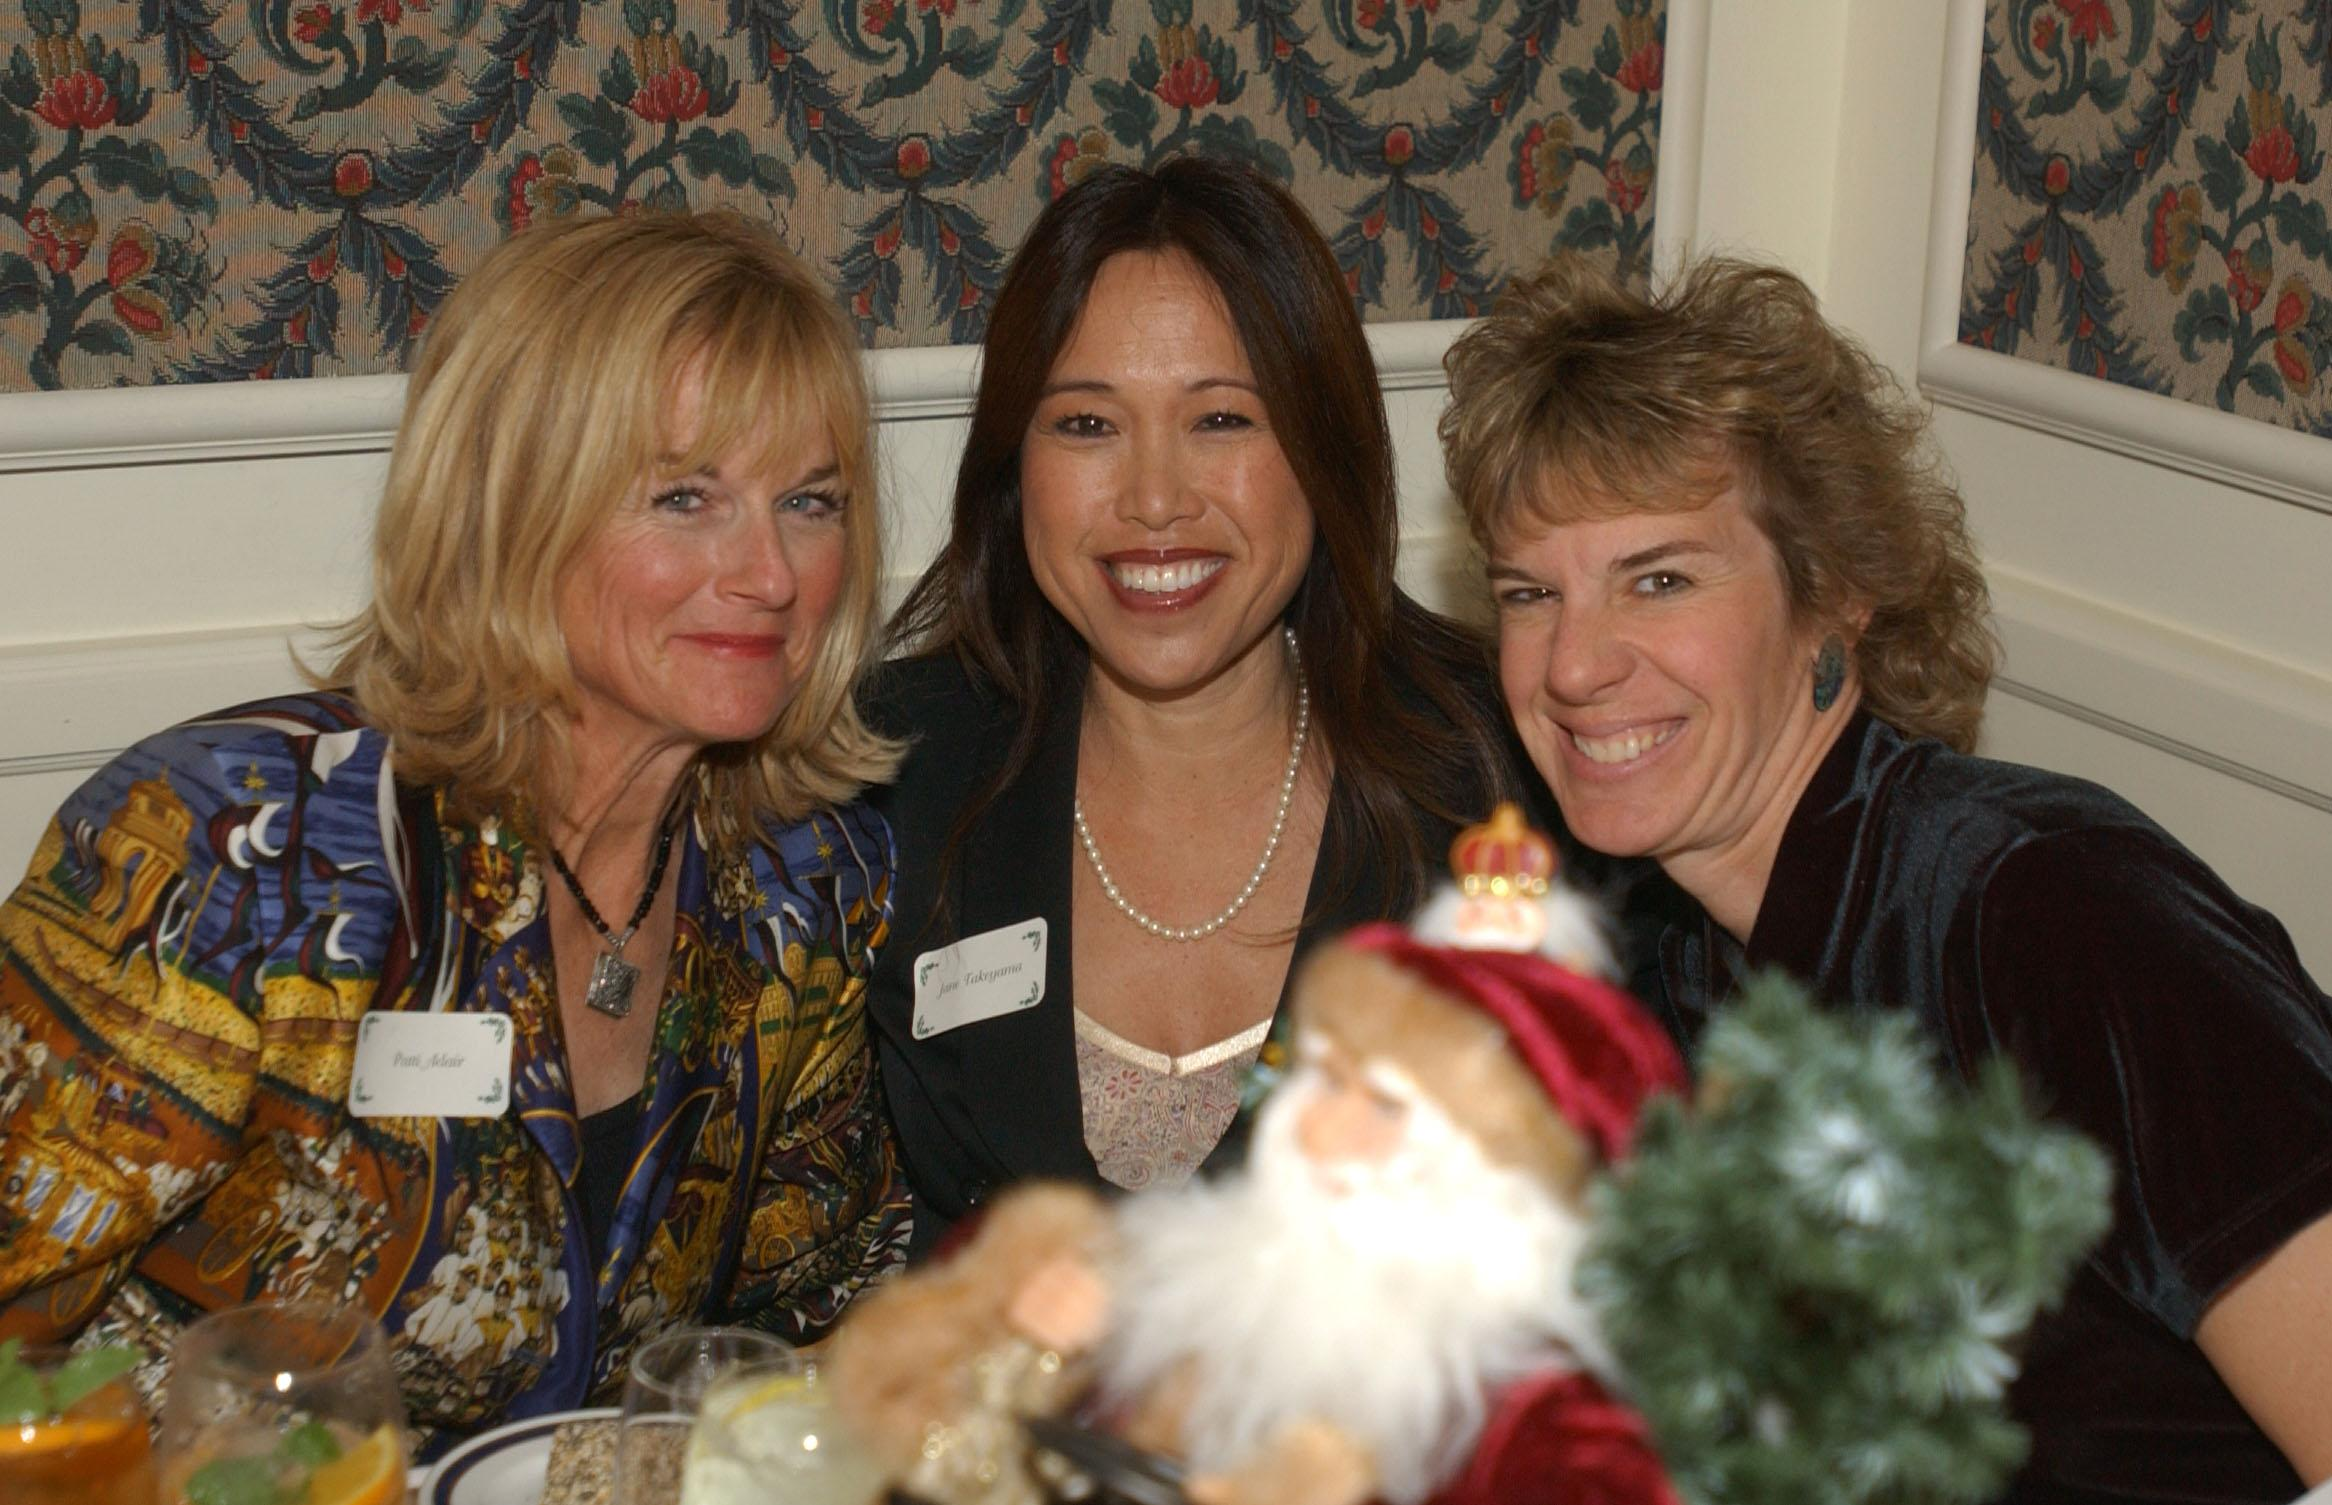 Crest Board members Patti Adair, Jane Takeyama, and Heidi Bernard